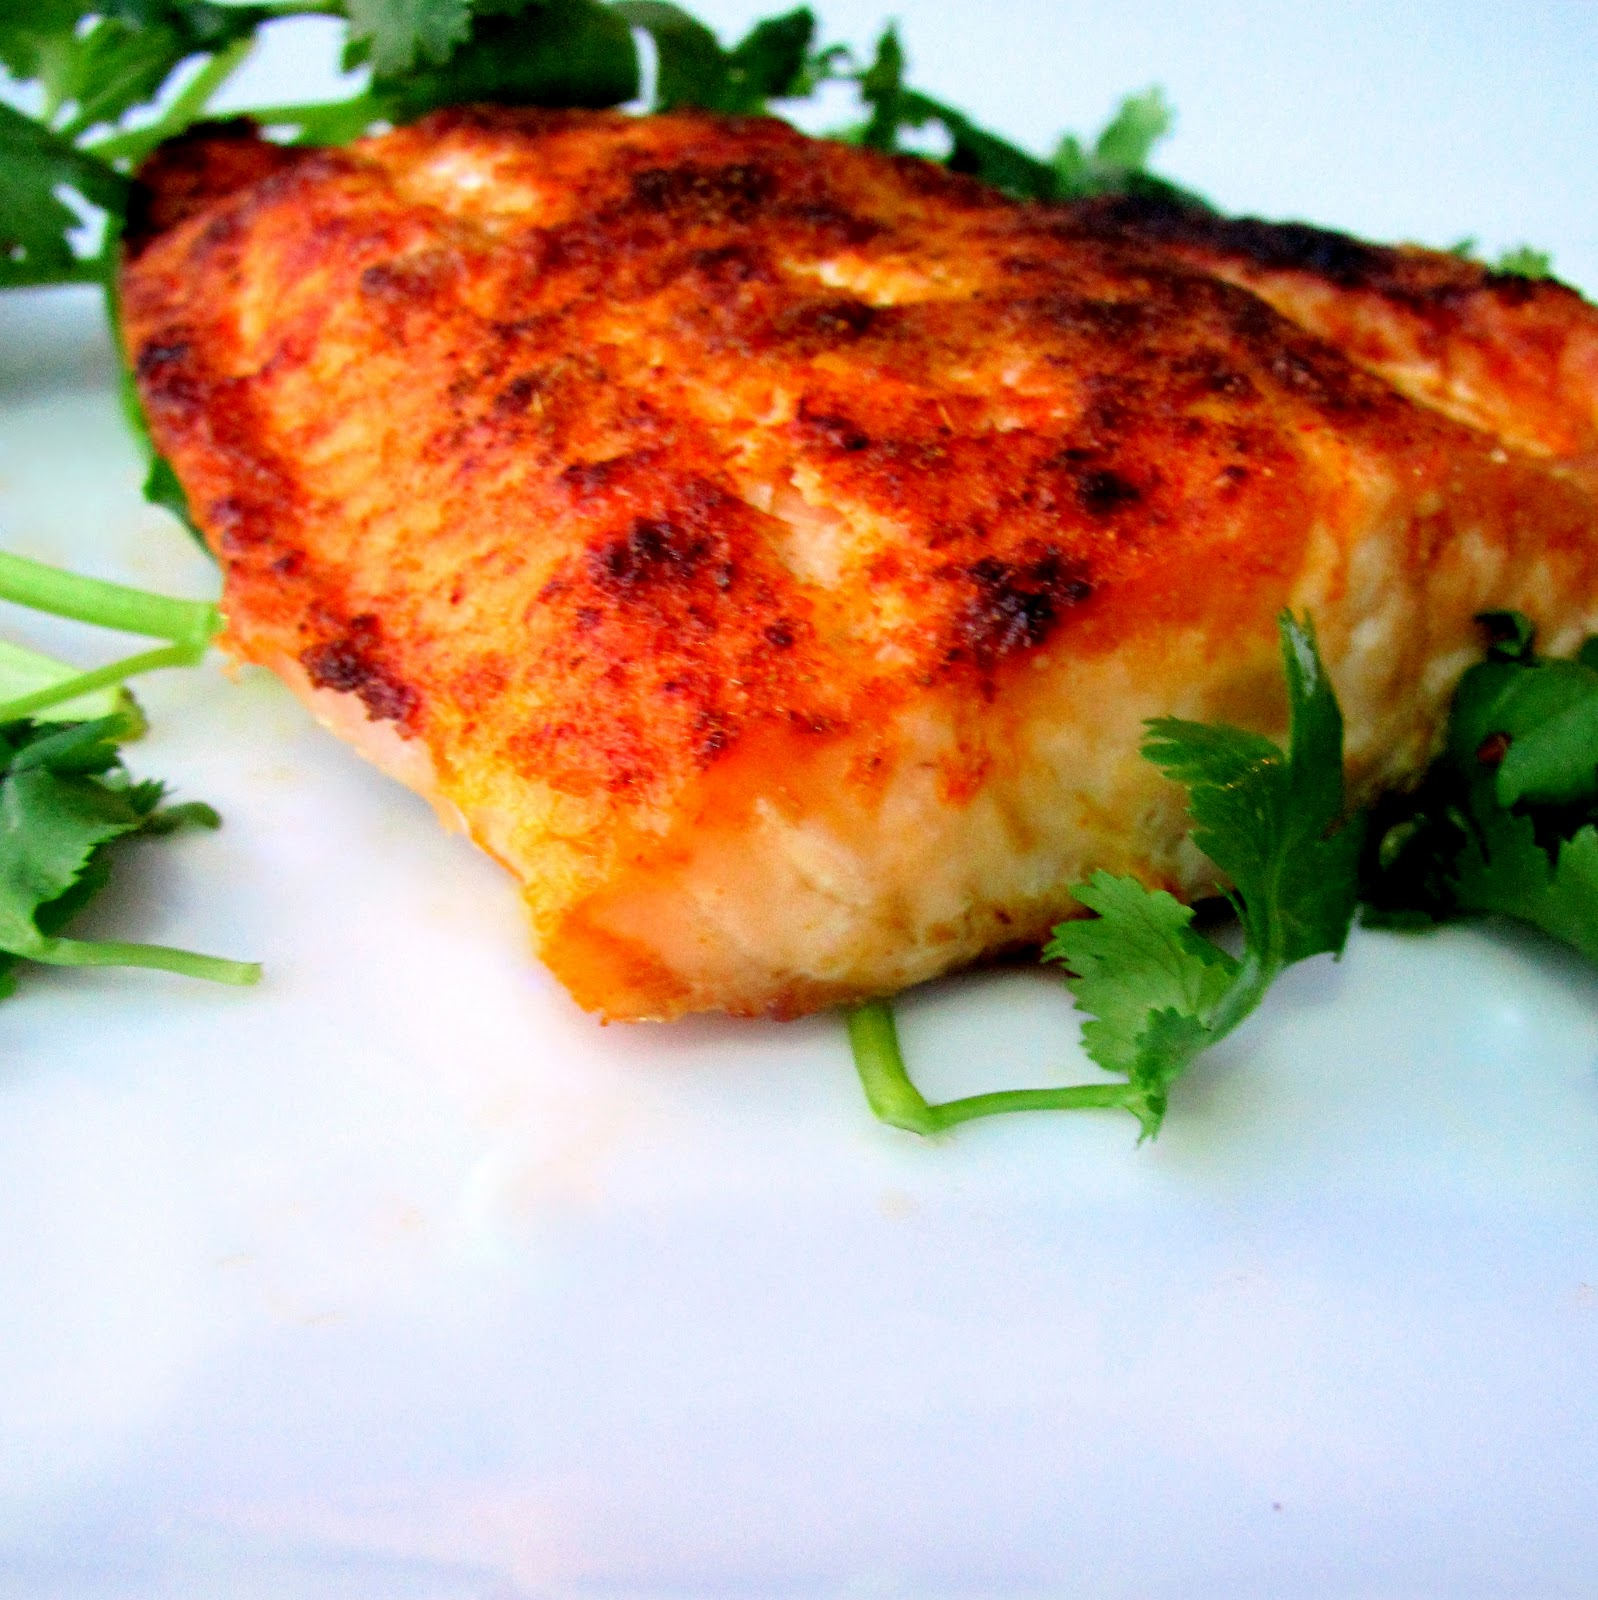 Blackened WILD Atlantic Salmon